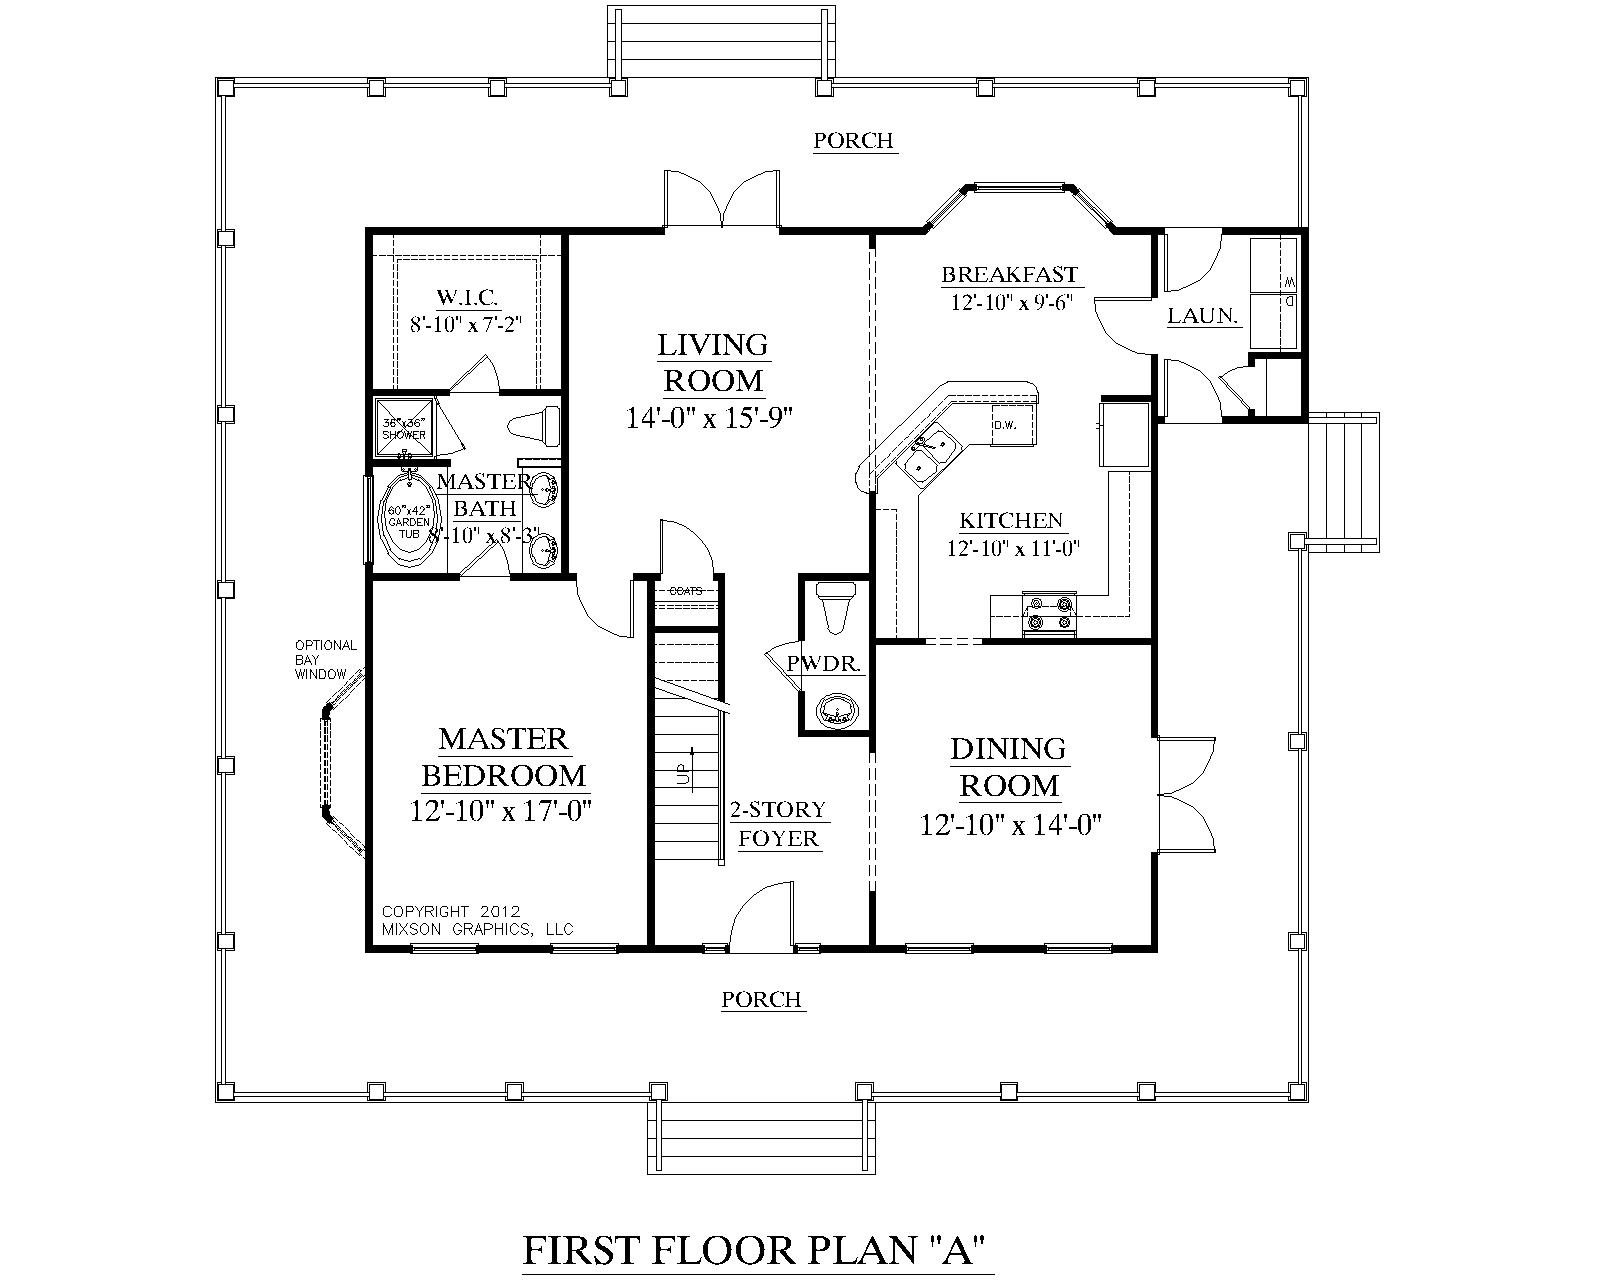 Small 1 story house clipart svg freeuse Small 1 story house clipart - ClipartFox svg freeuse